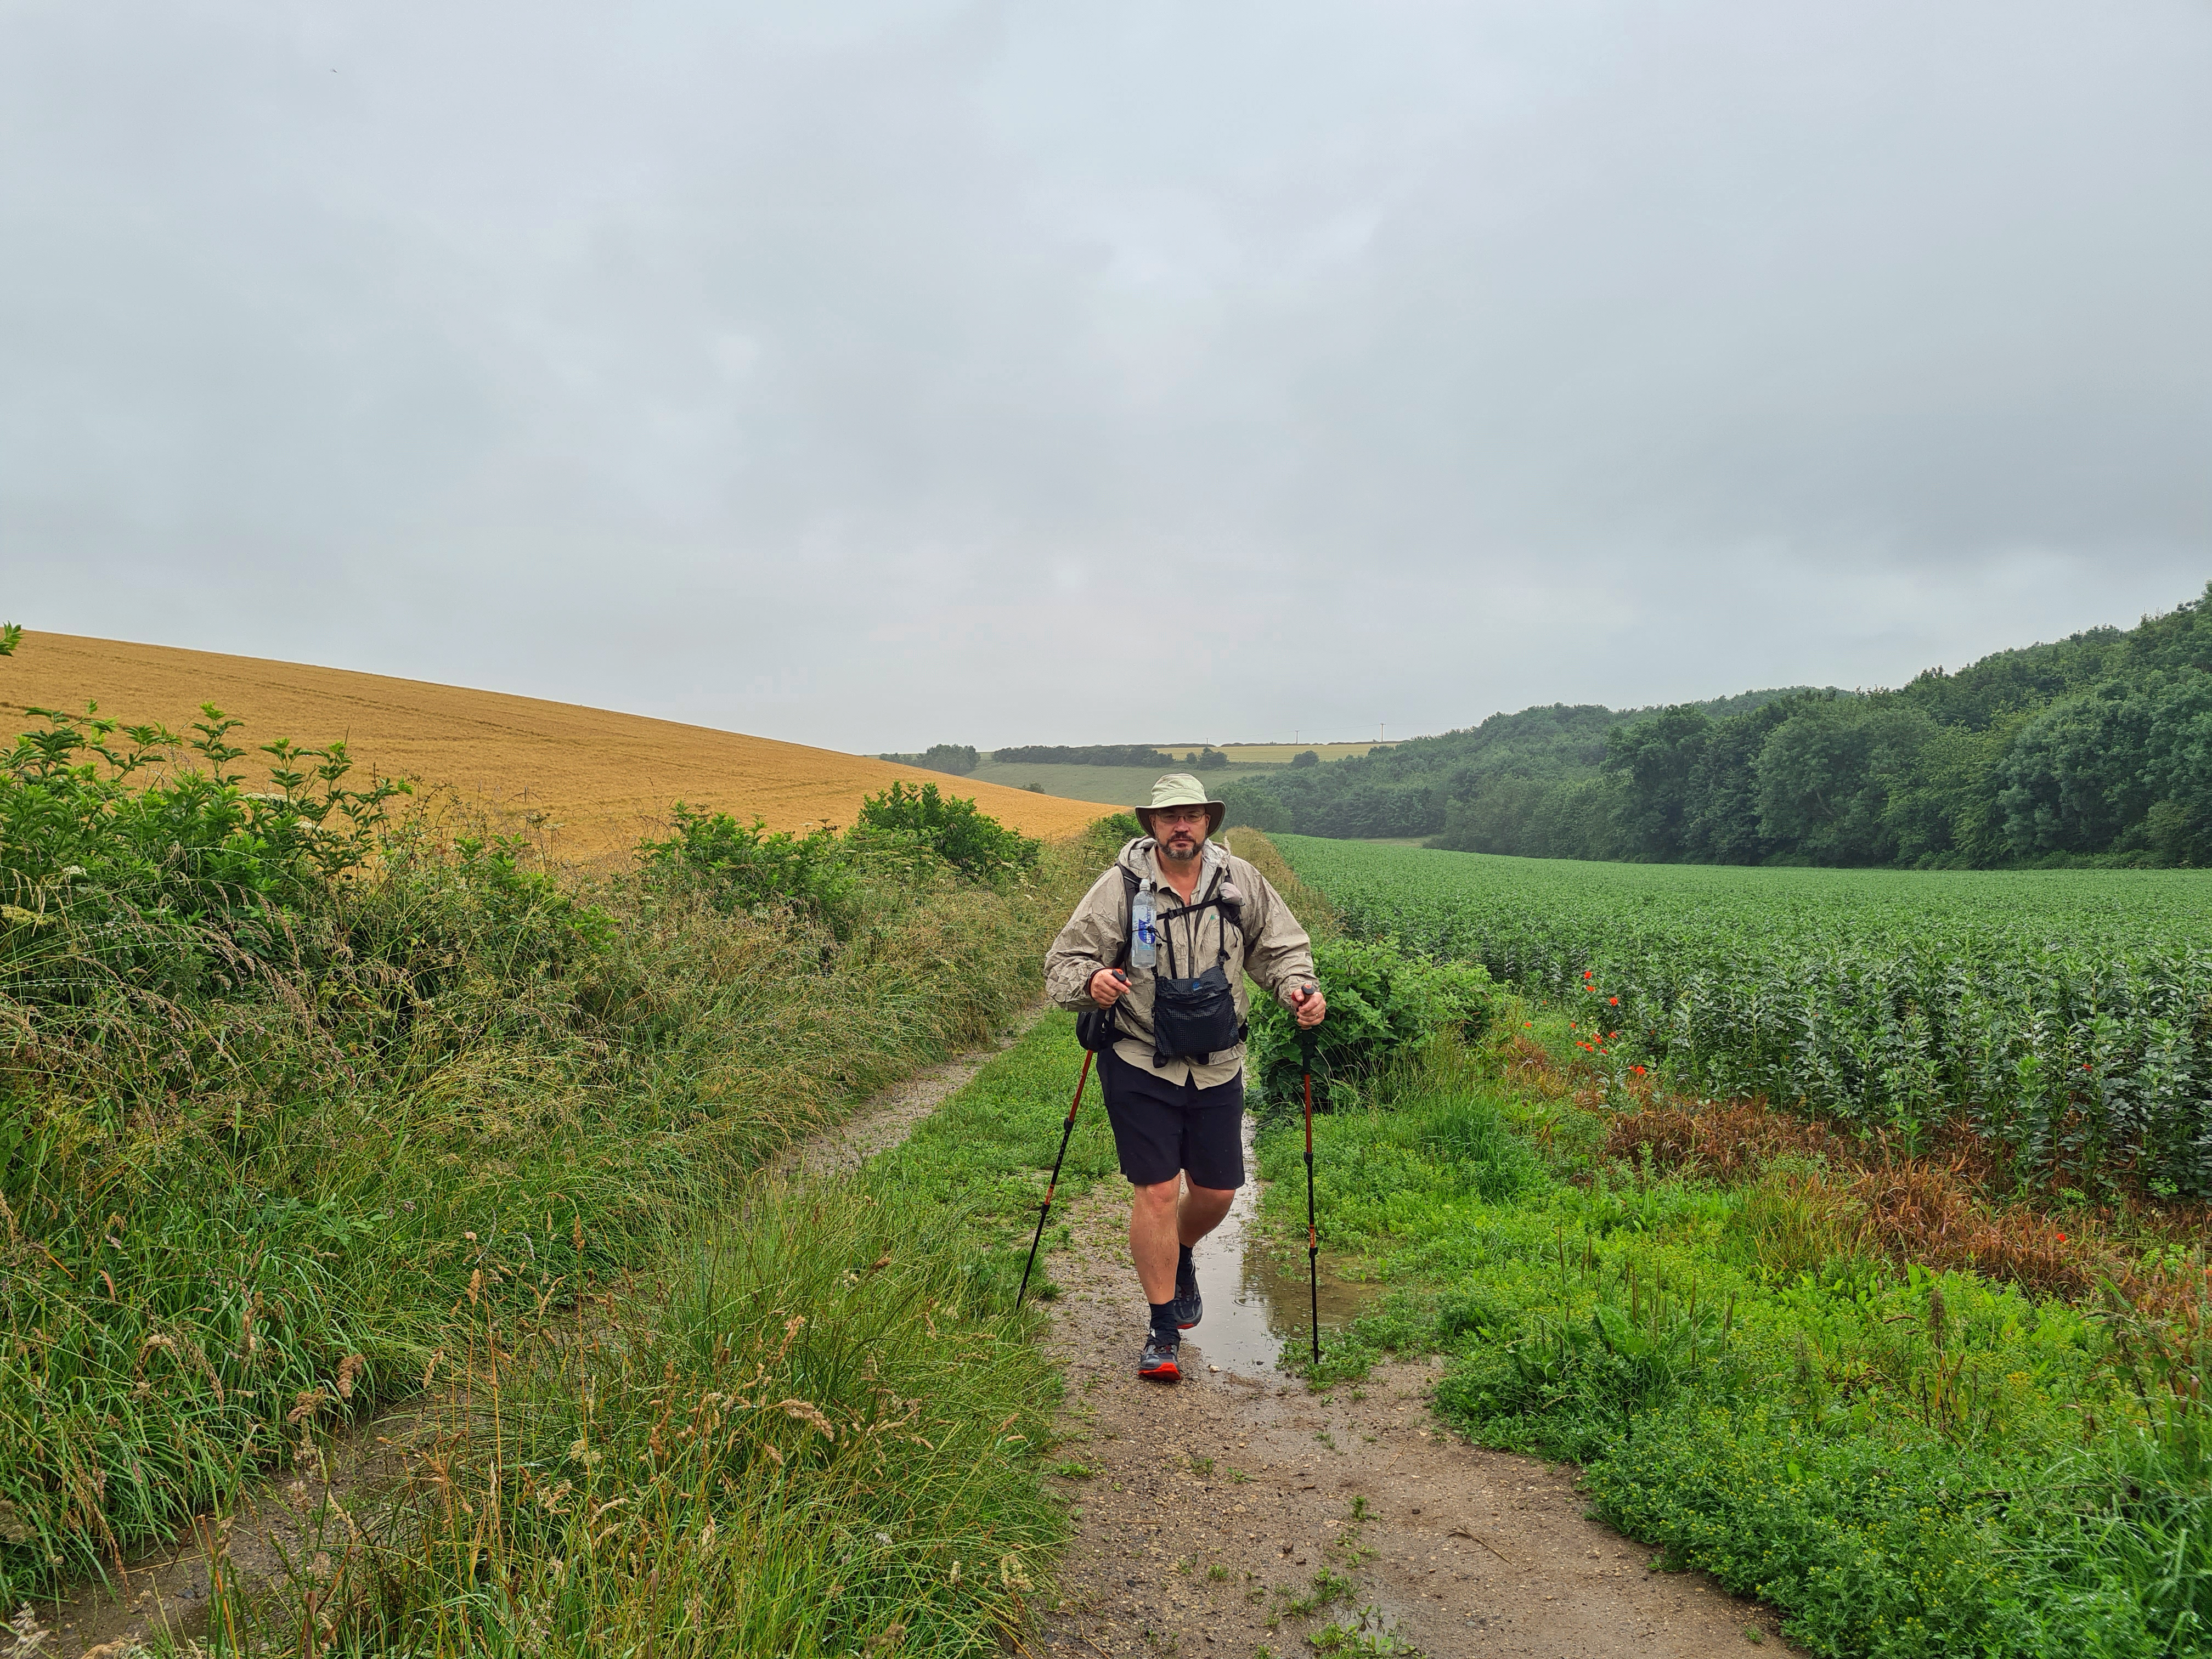 My first 'proper' day on trail was a short one as I had broken it's back by getting a few miles in the day before. It was wet and periodically chucked it down throughout my short day's walk. I enjoyed this, keeping cool and comfortable. Decent socks and trail runners are more than adequuated for this walk. A series of agricultural crop fields and a few damp looking sheep are passed for this stretch until ny reaching Goodmanham in time for a late lunchtime pint in the pub there.